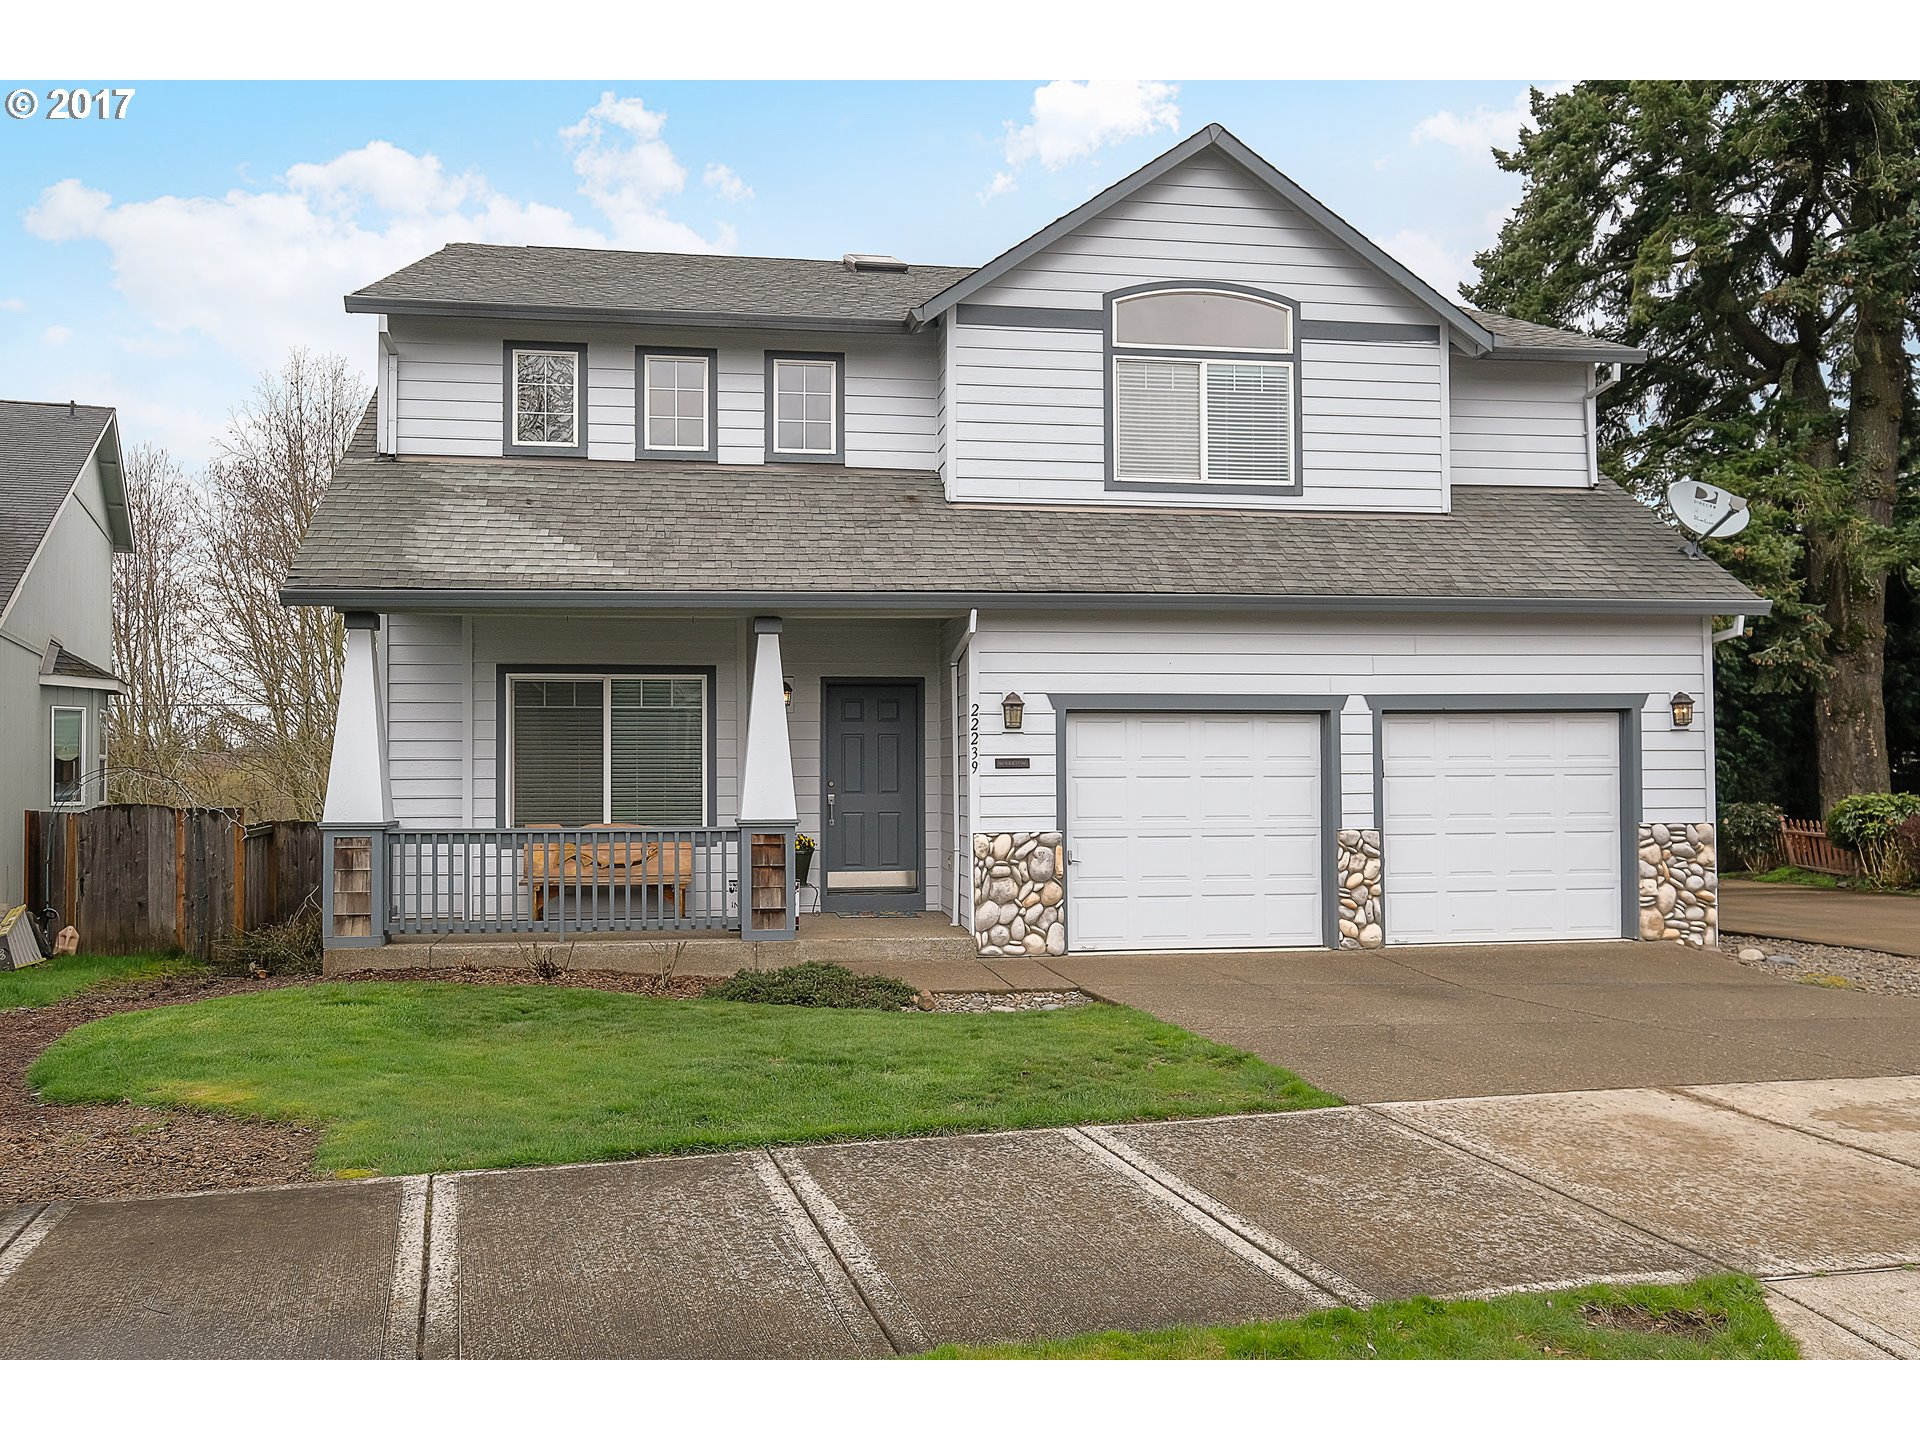 2382 sq. ft 4 bedrooms 3 bathrooms  House For Sale, Sherwood, OR